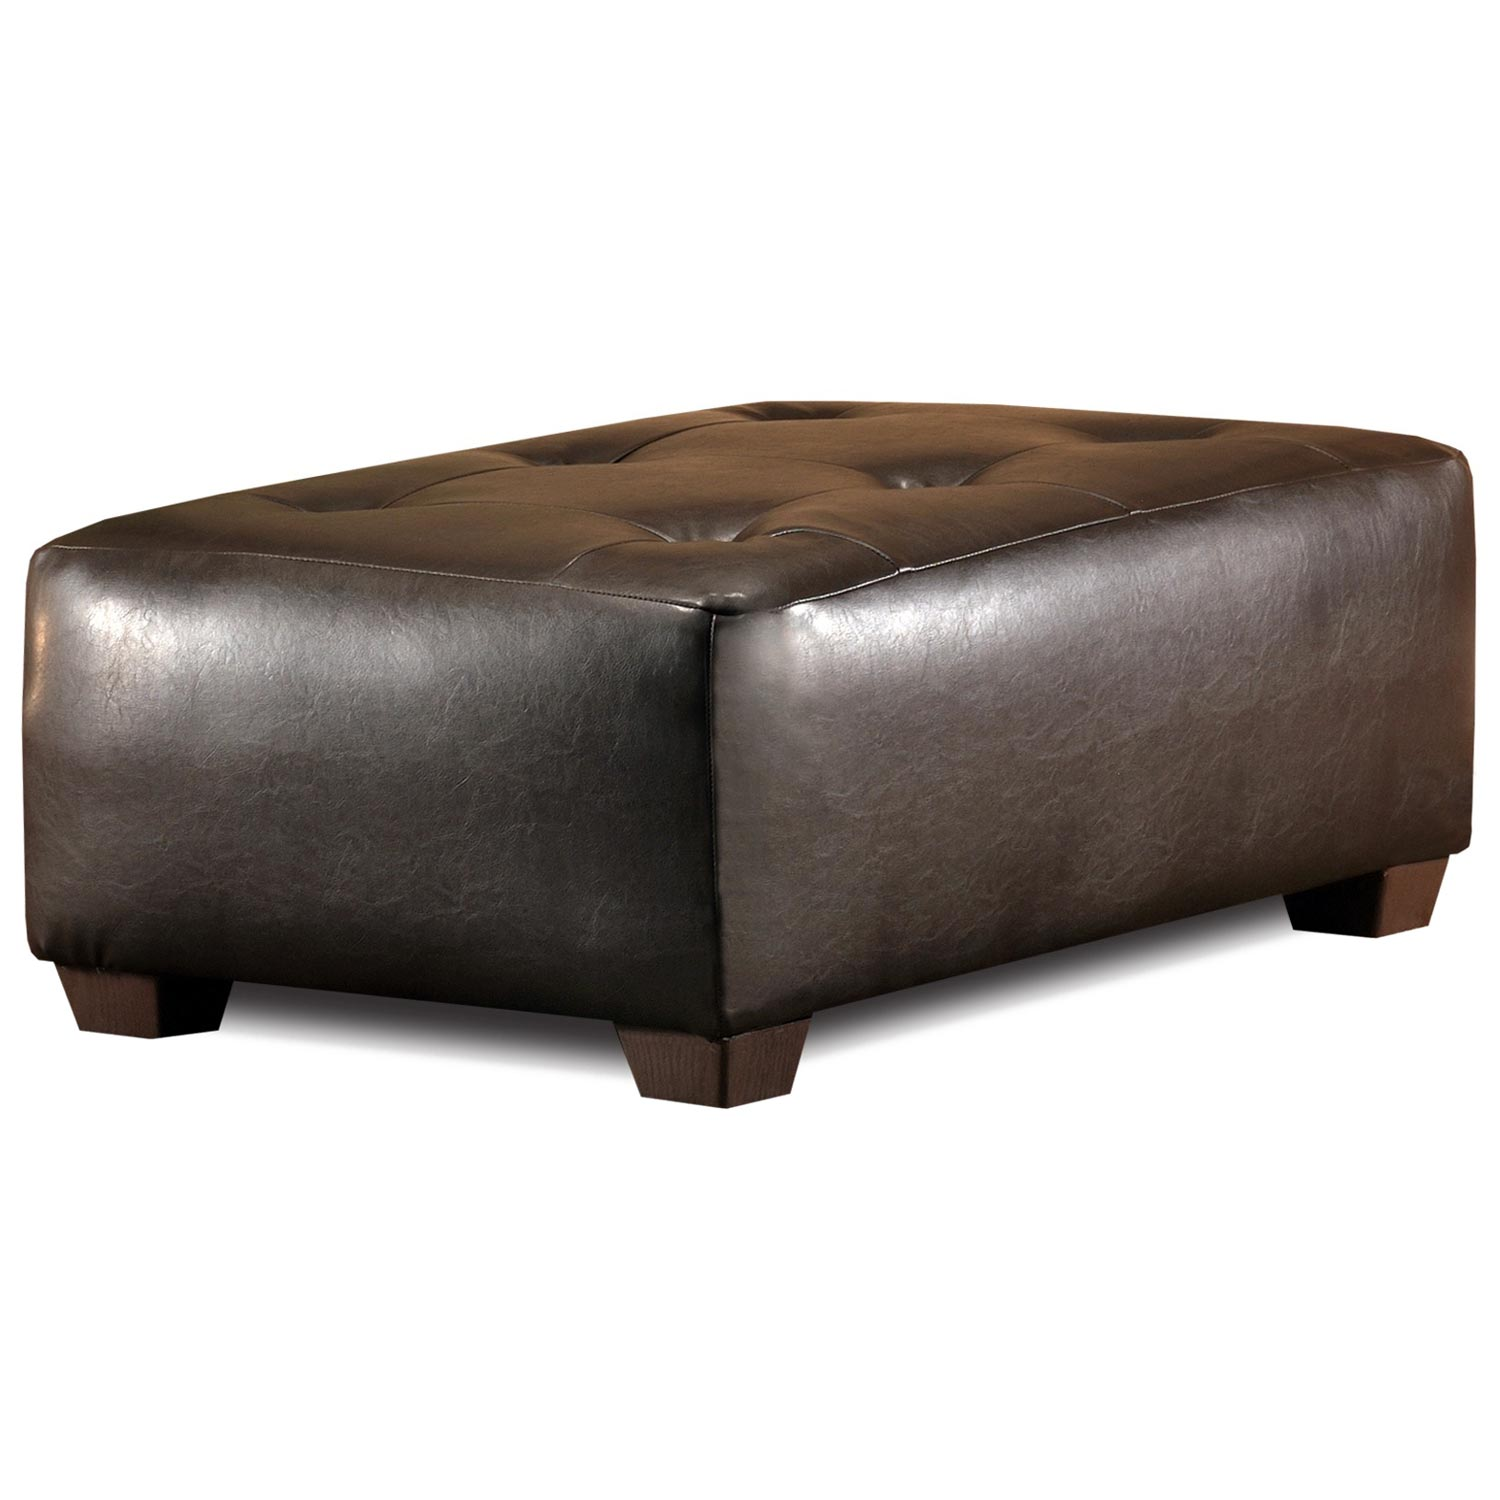 Upholstered Rectangular Ottoman - Tufting, Brown